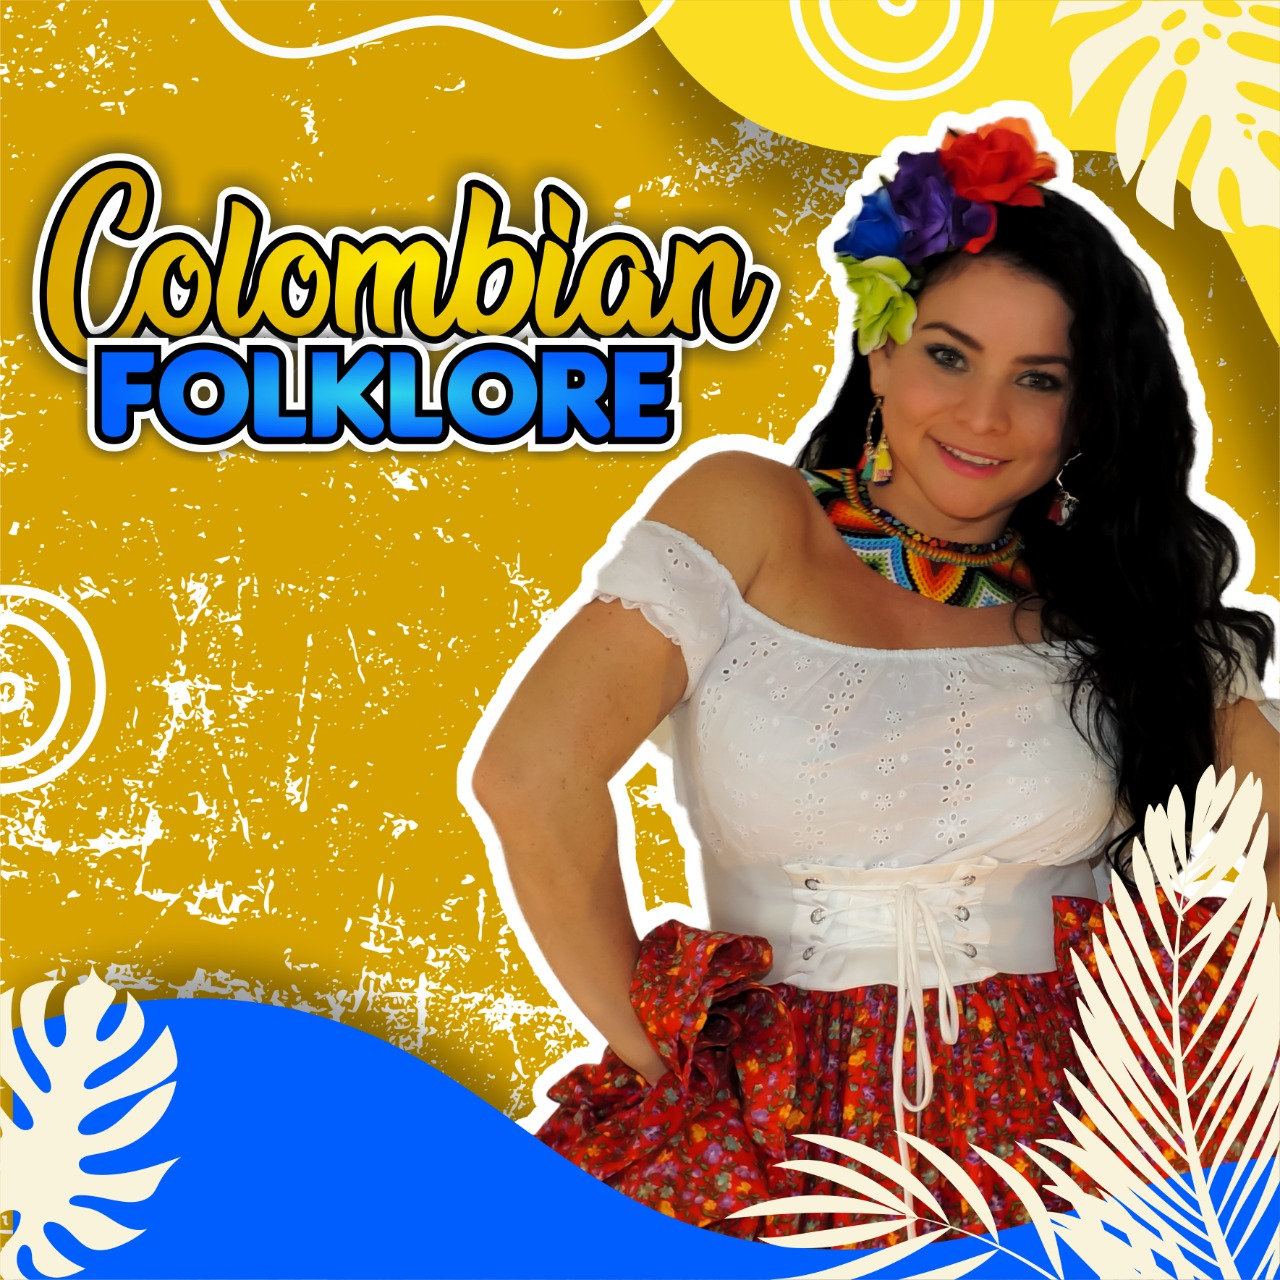 Colombian Folklore Outdoors